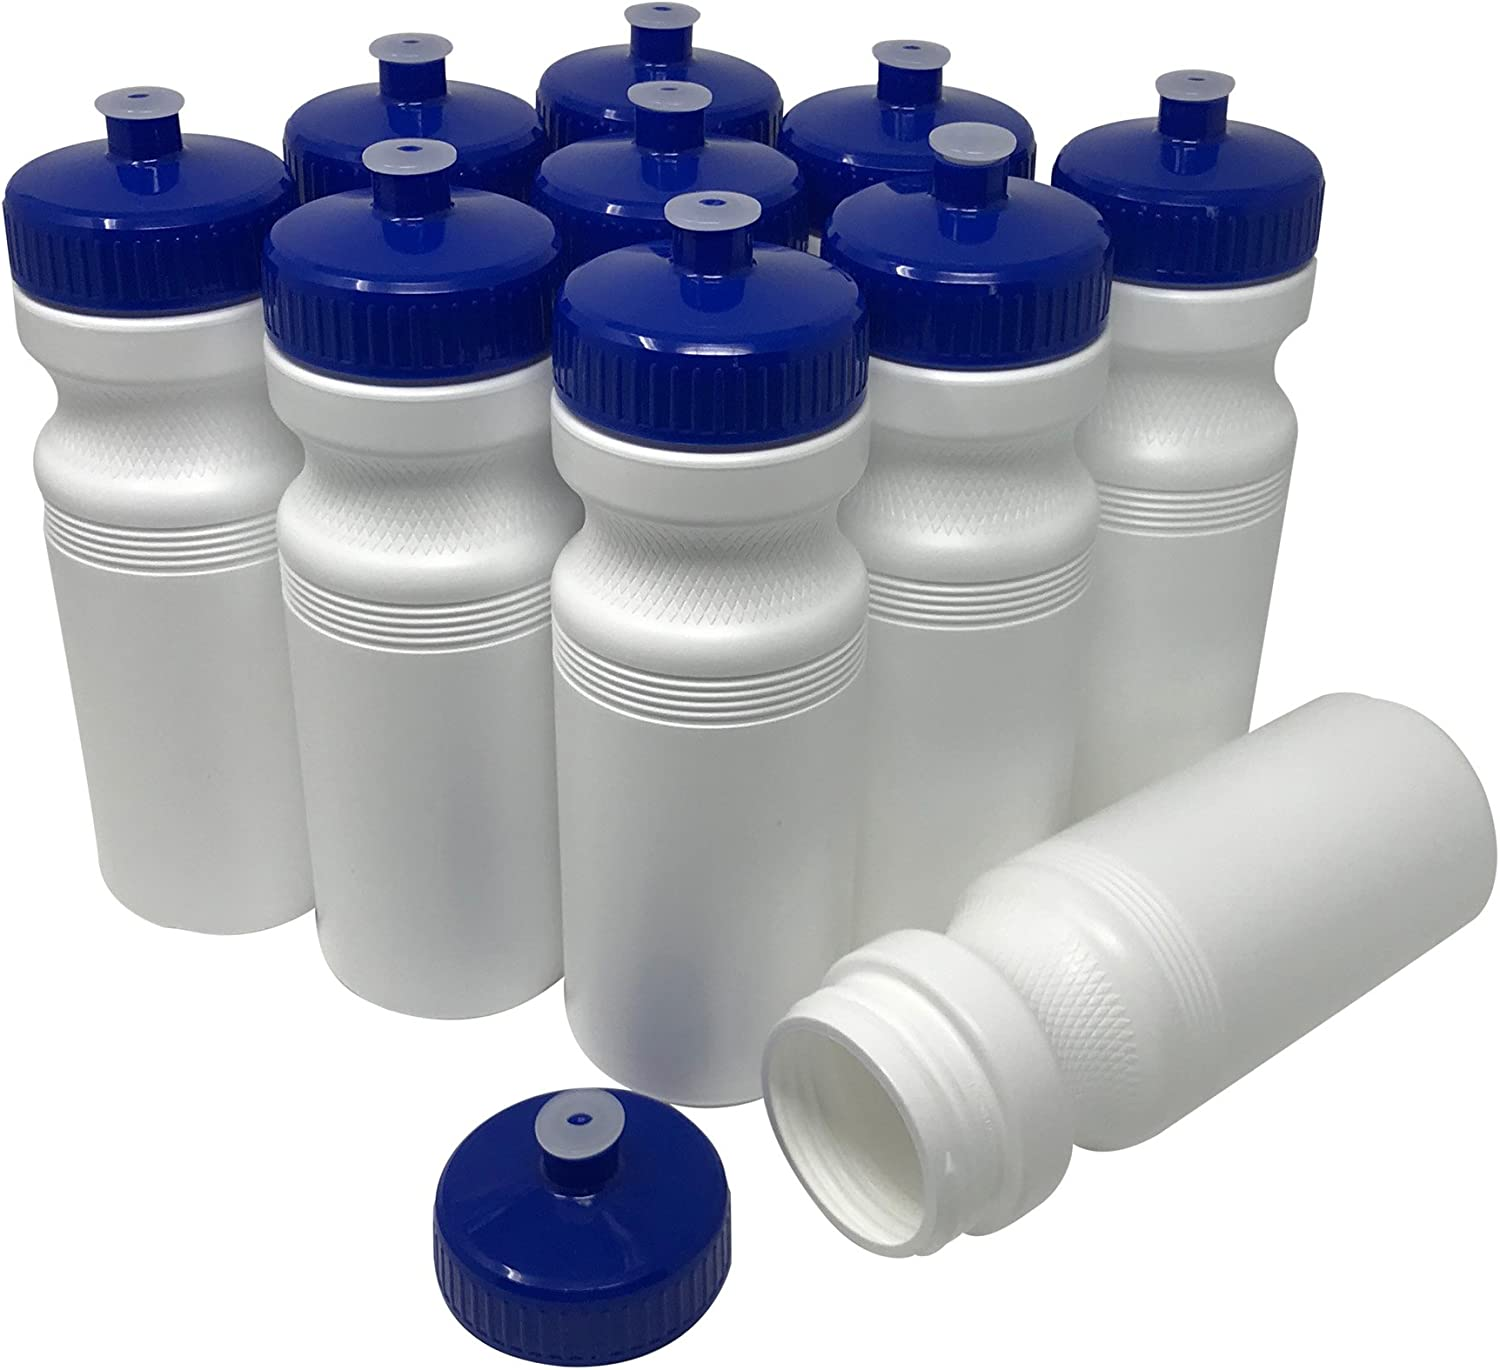 CSBD 24oz Sports Water Bottles, 10 Pack, Reusable No BPA Plastic, Pull Top Leakproof Drink Spout, Blank DIY Customization for Business Branding, Fundraises, or Fitness